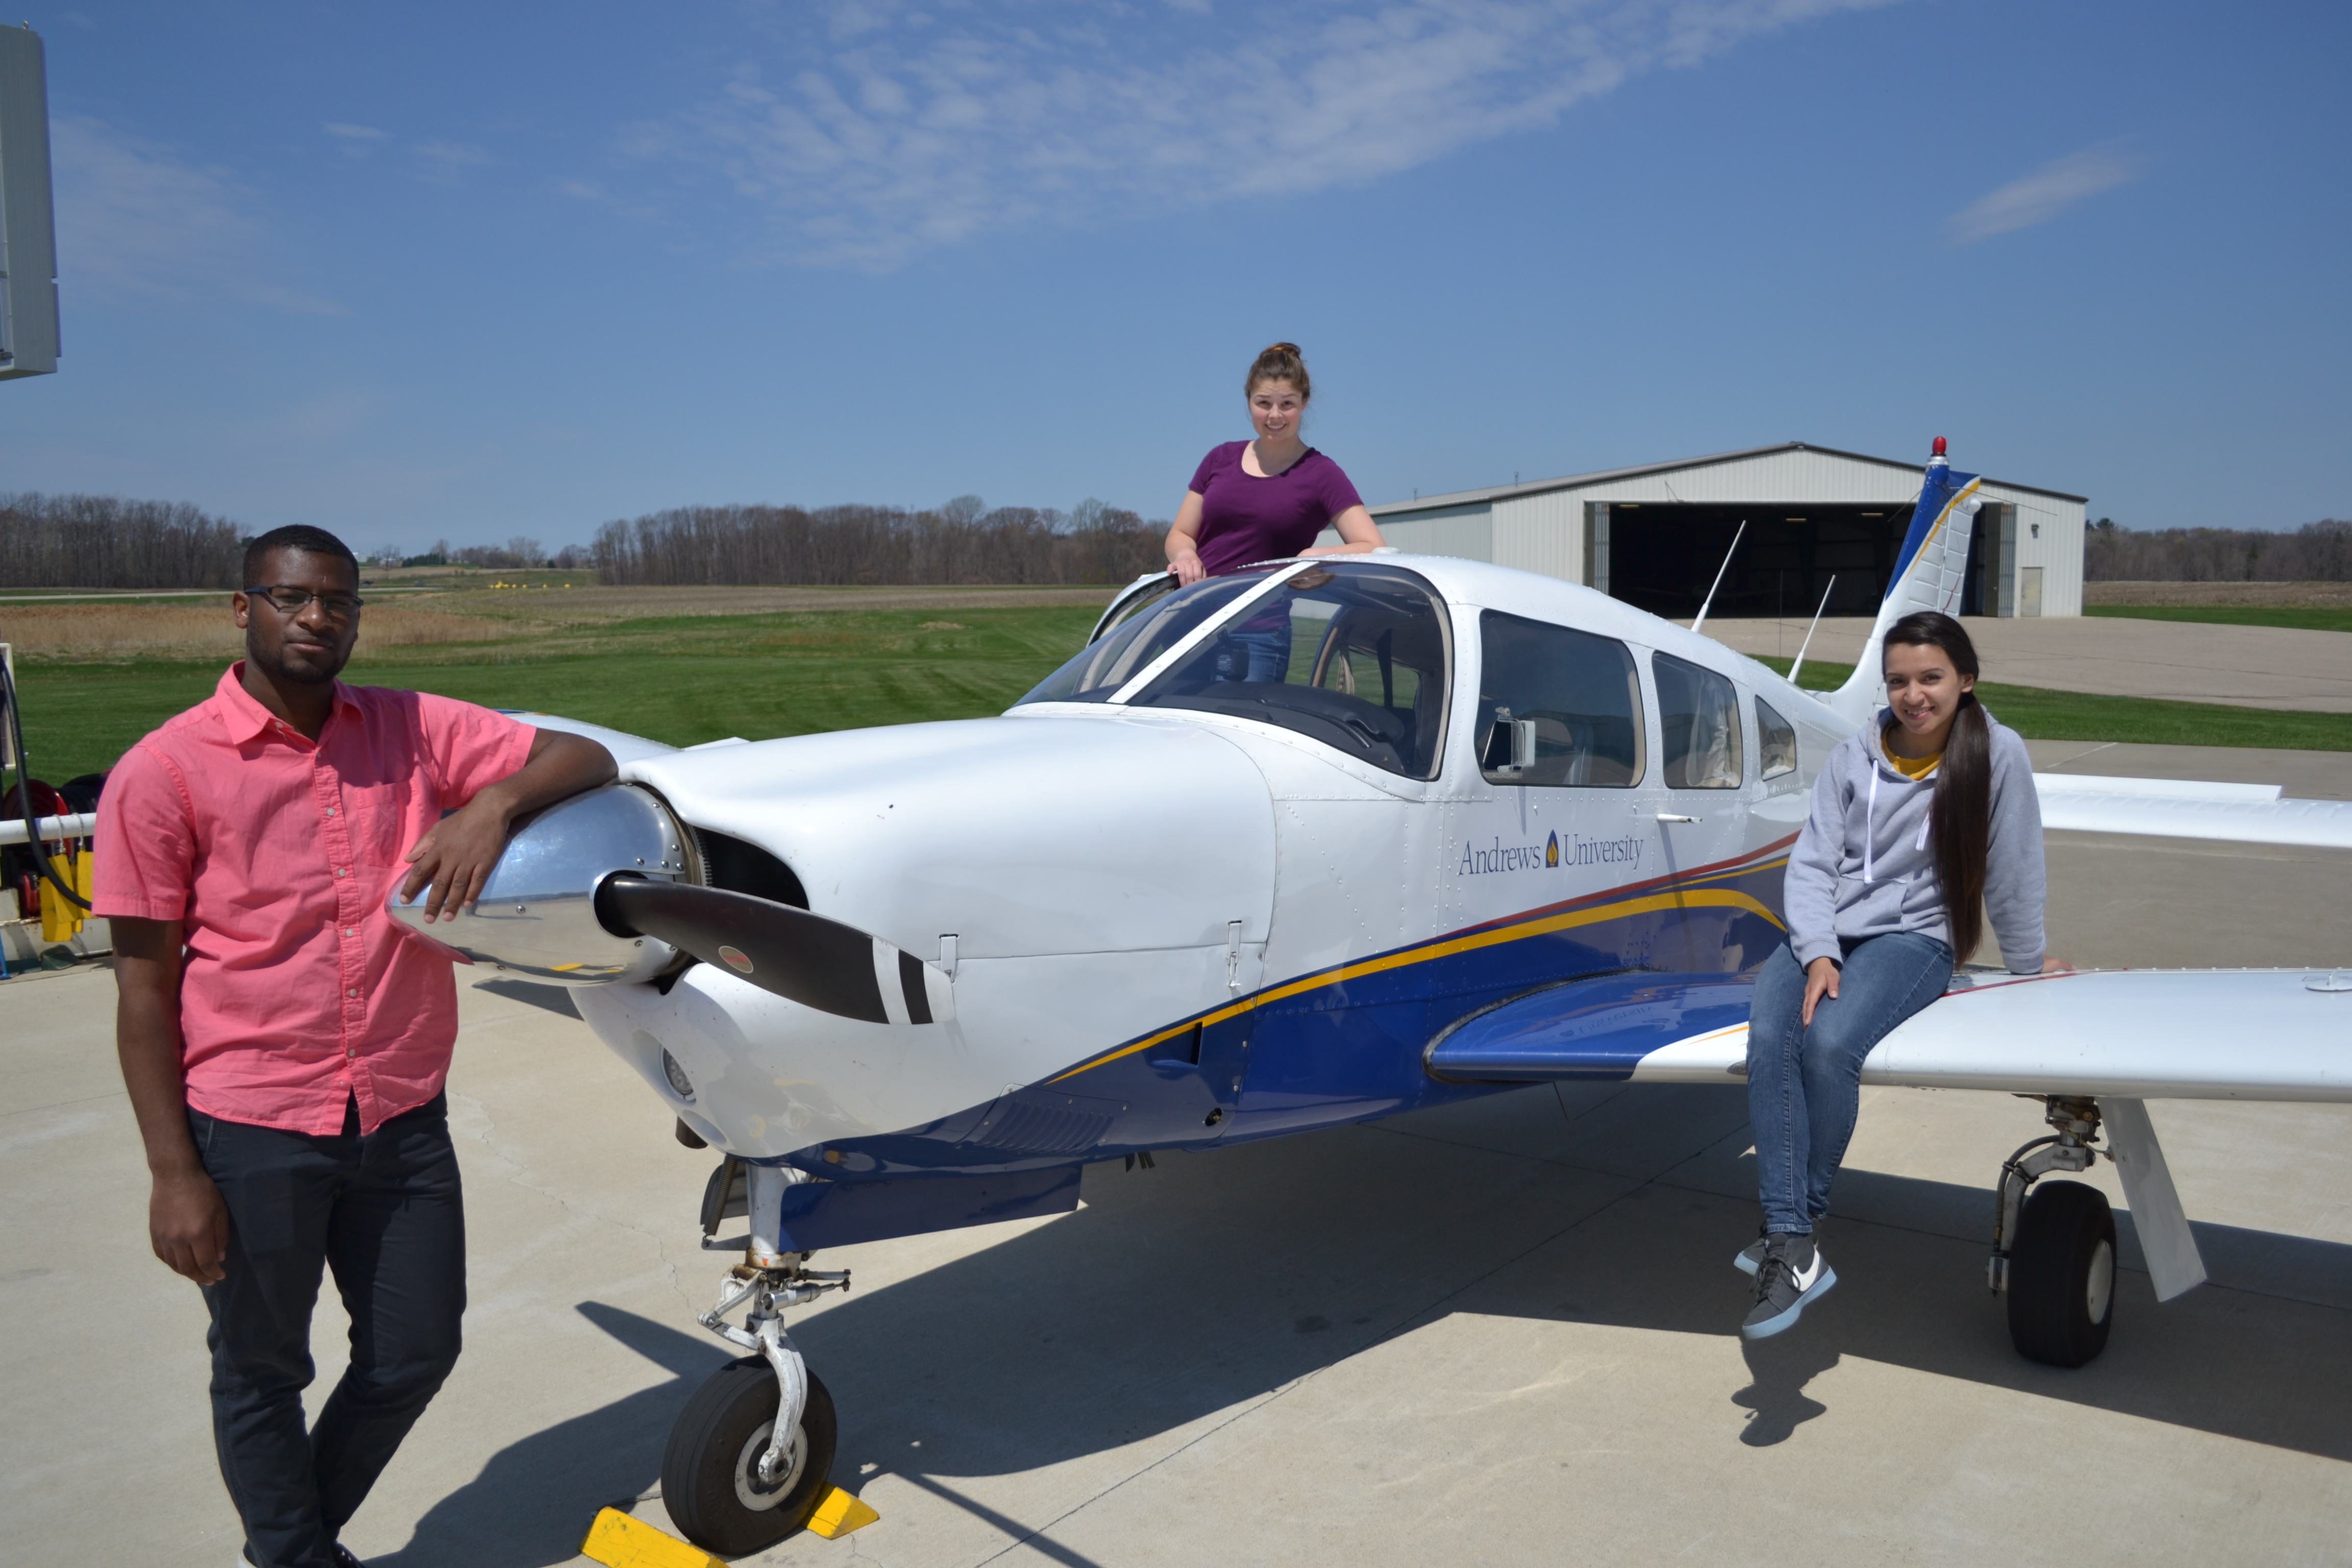 Aircraft Mechanic top history undergraduate programs